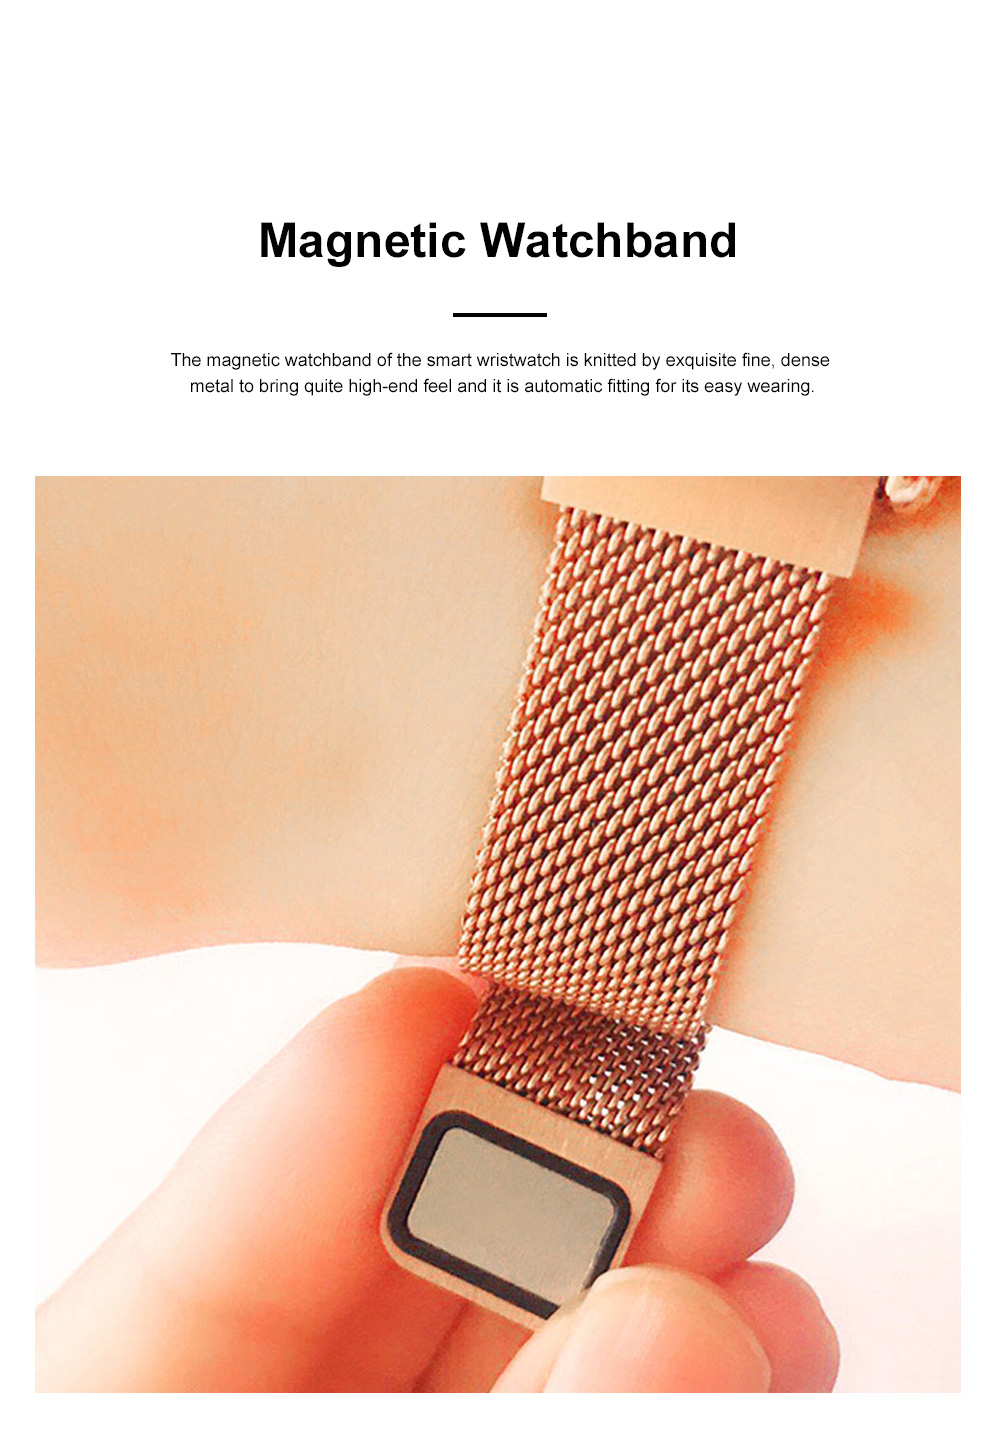 Multifunctional Smart Wrist Watch for Women Daily Wear Fashionable and Smart Bracelet Bluetooth Colorful Screen Wristwatch 1